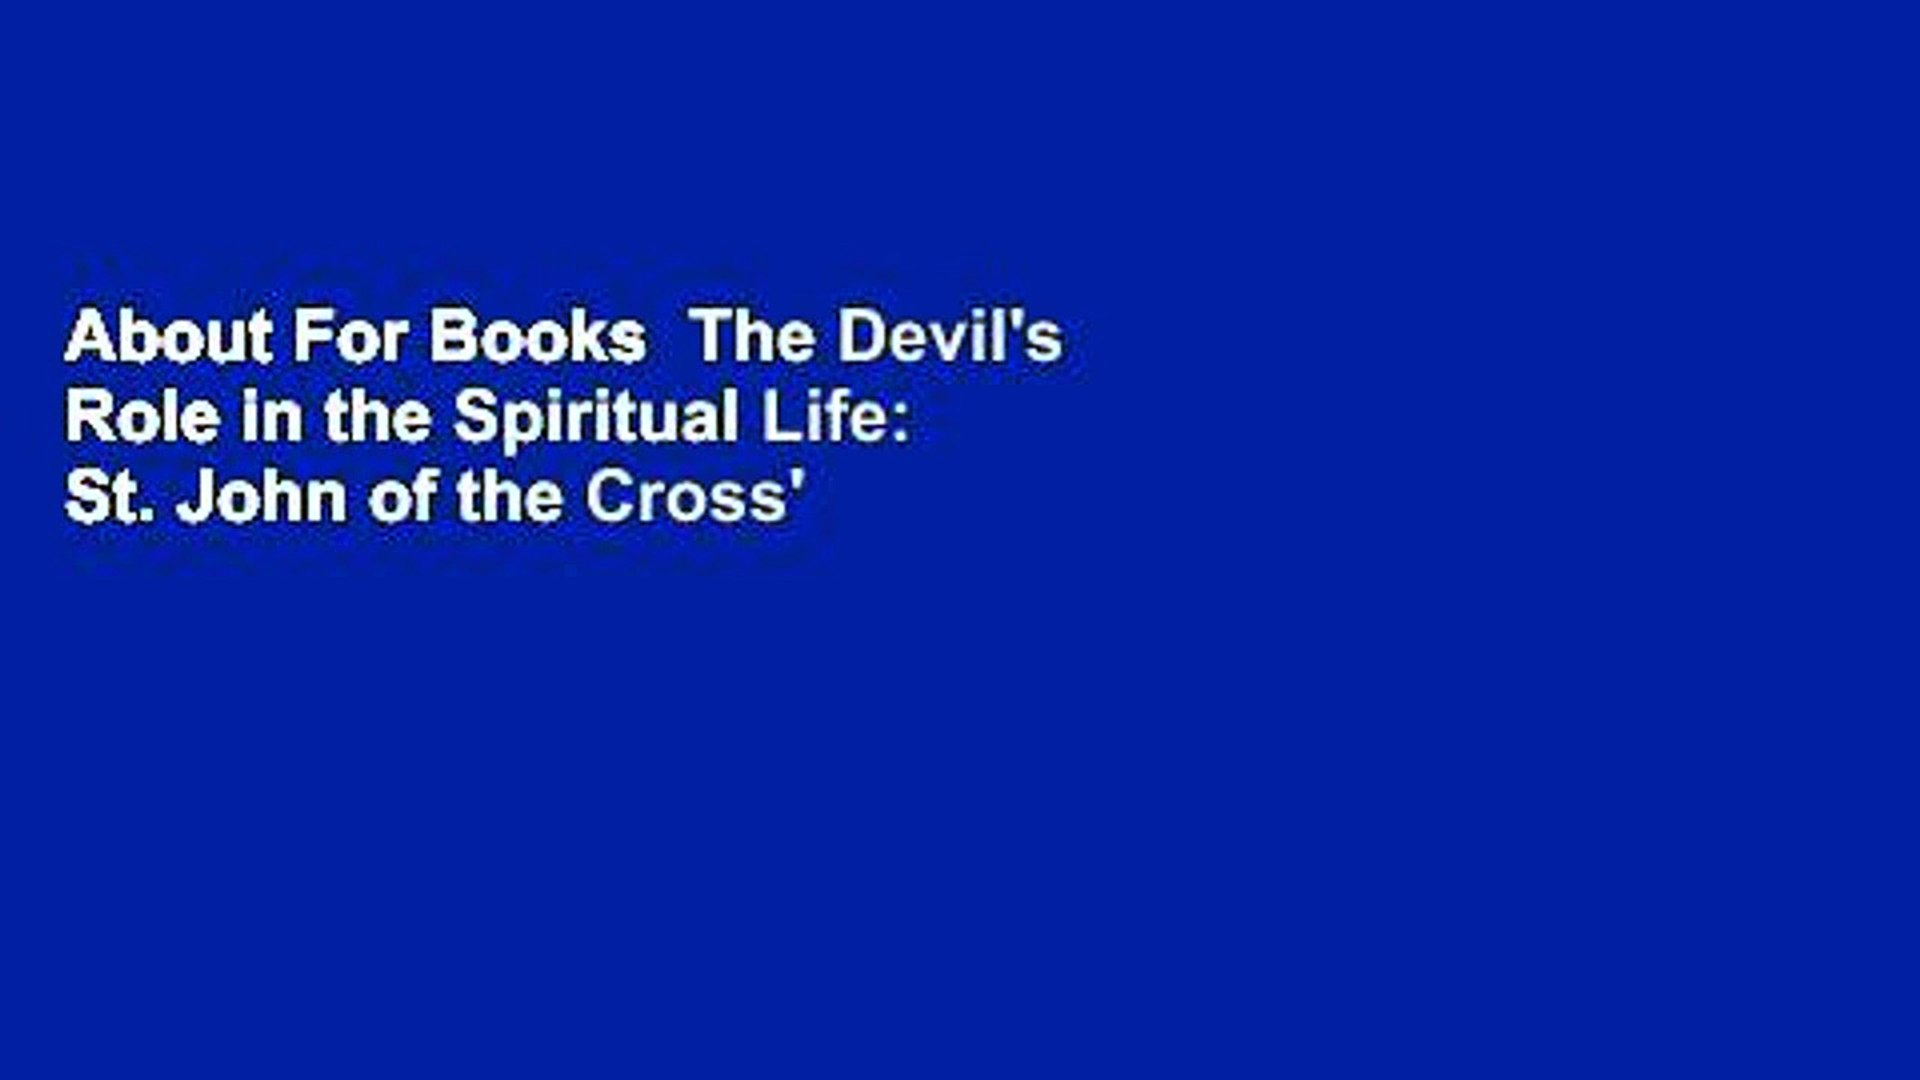 About For Books  The Devil's Role in the Spiritual Life: St. John of the Cross' Teaching o